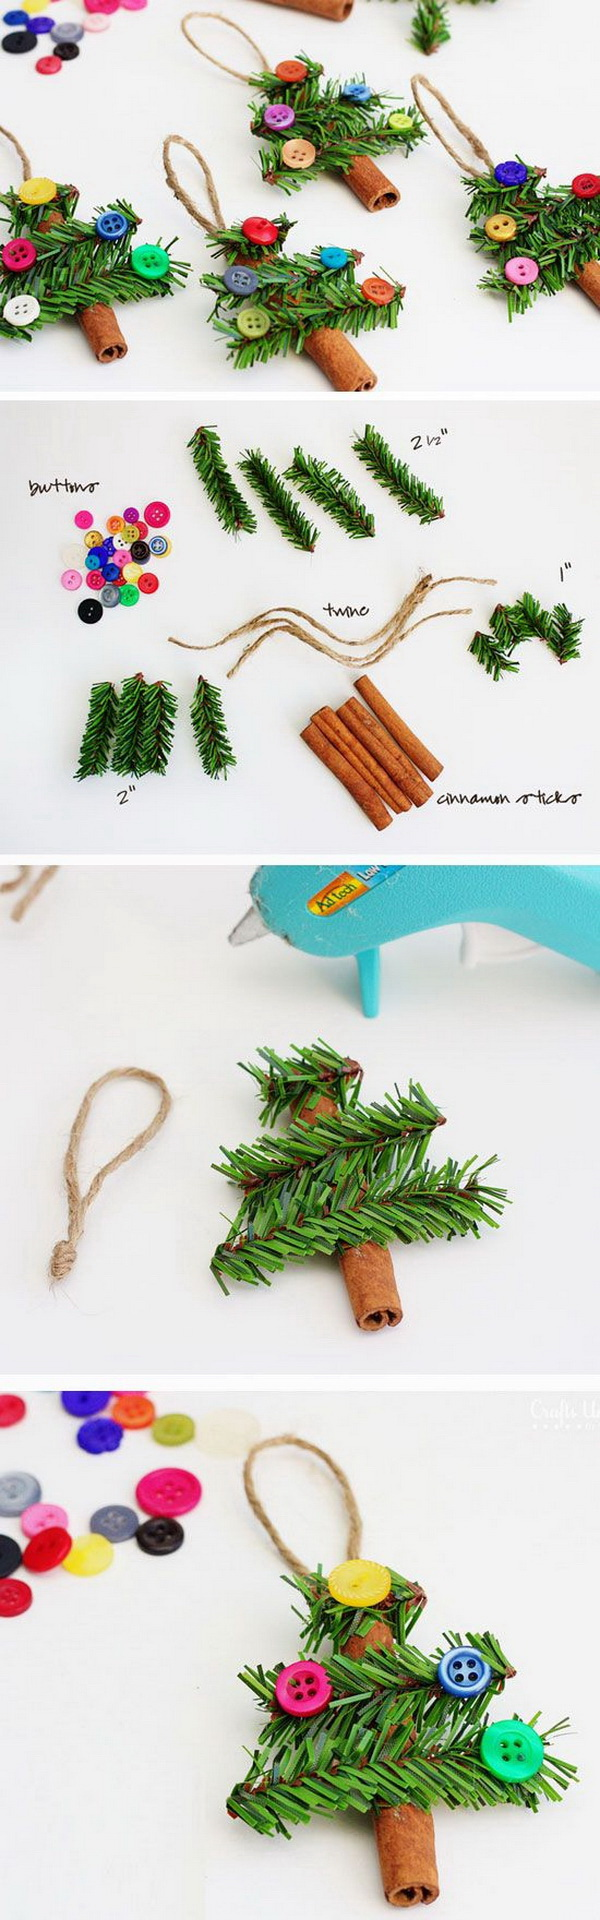 Cinnamon Stick Tree Ornaments. These cinnamon stick Christmas tree ornaments are super easy to make and perfect to cover your tree or to give as a gift to the neighbors!